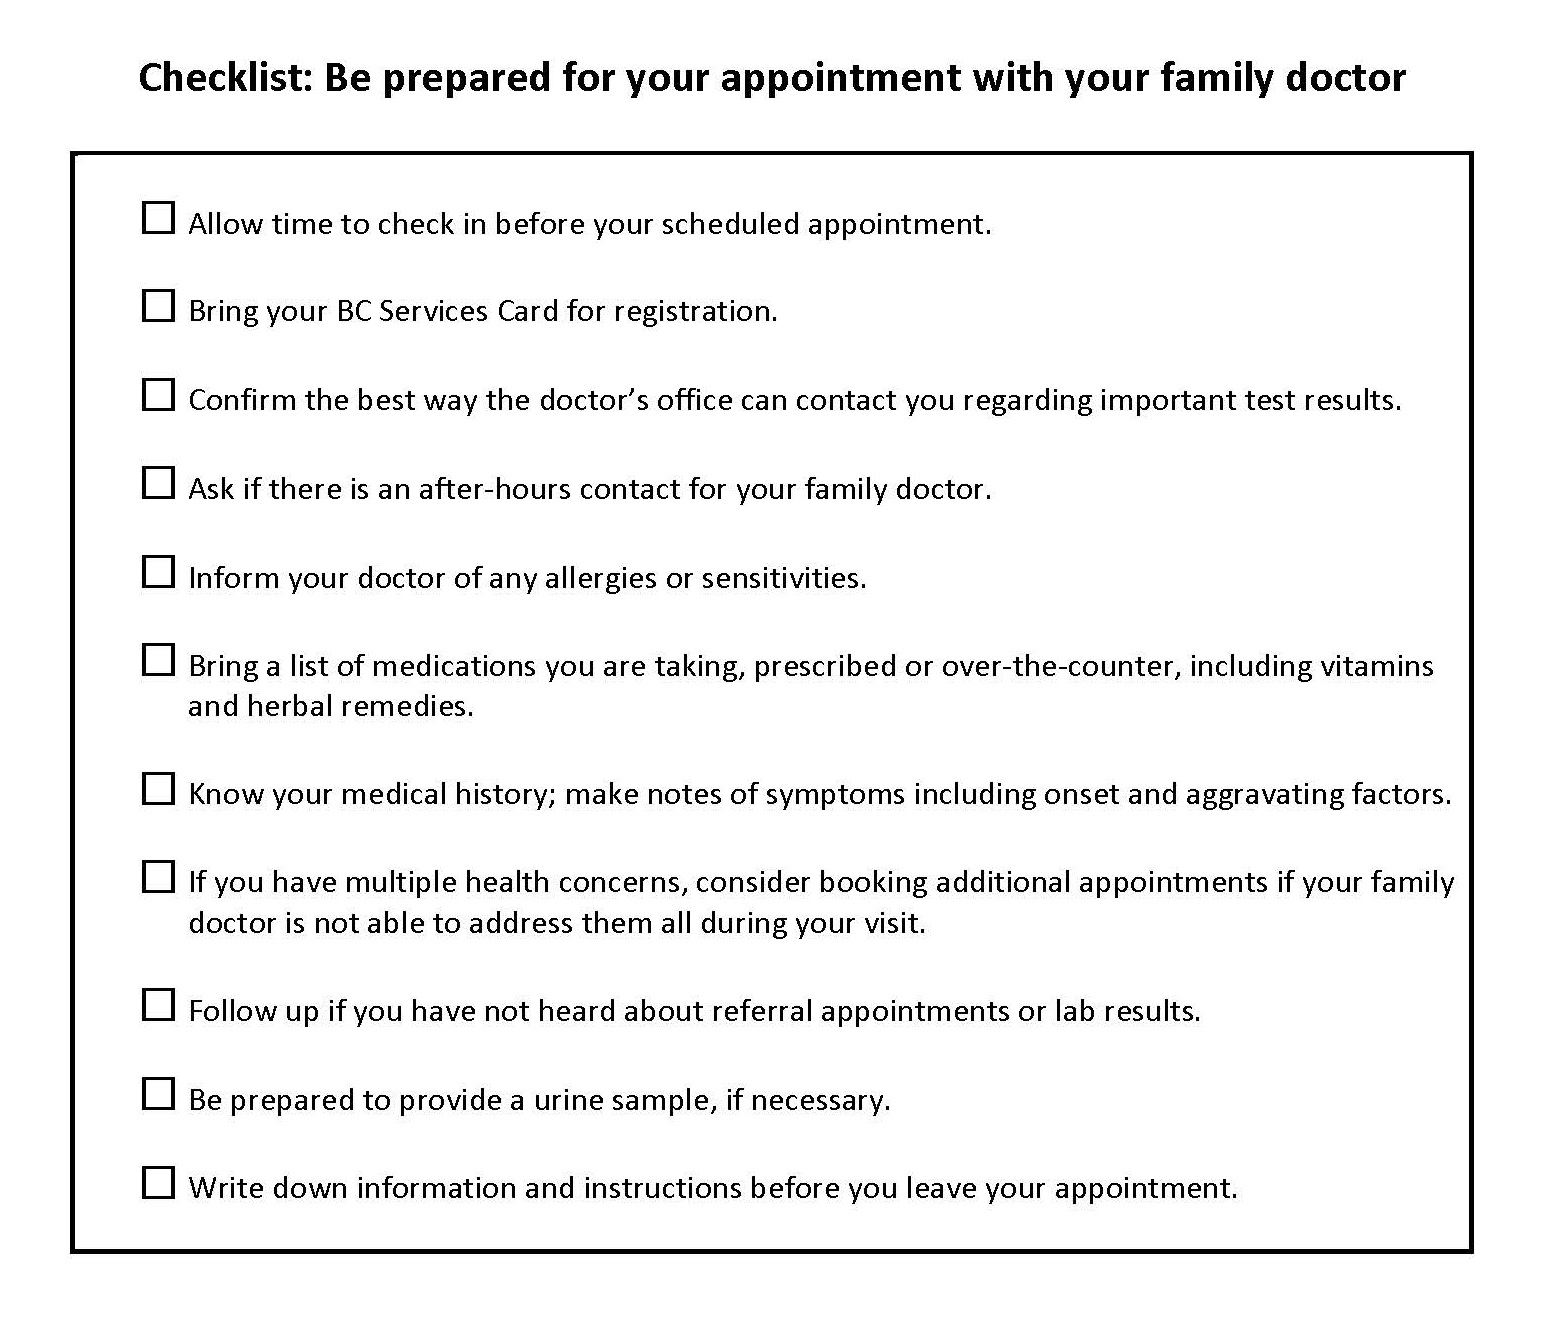 Checklist:  Be prepared for your appointment